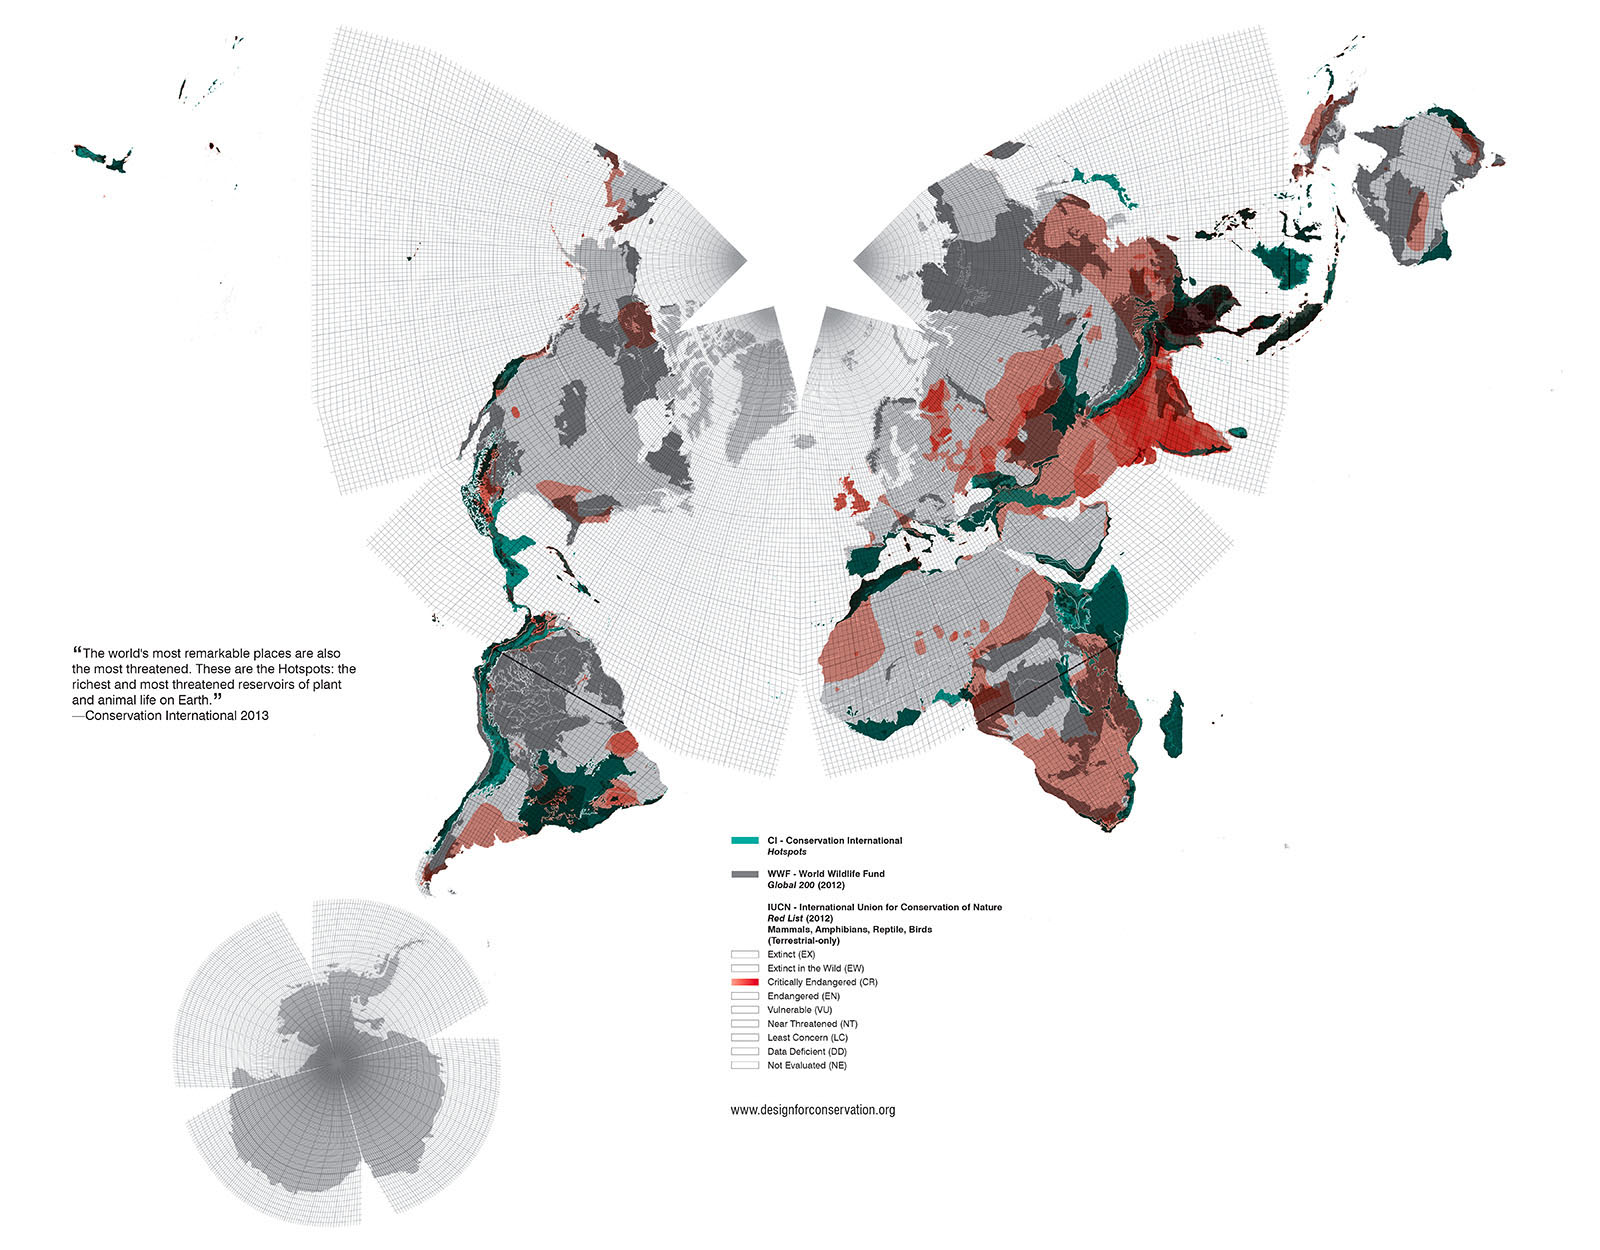 Global threatened biodiversity areas categorized by the IUCN, CI and WWF.